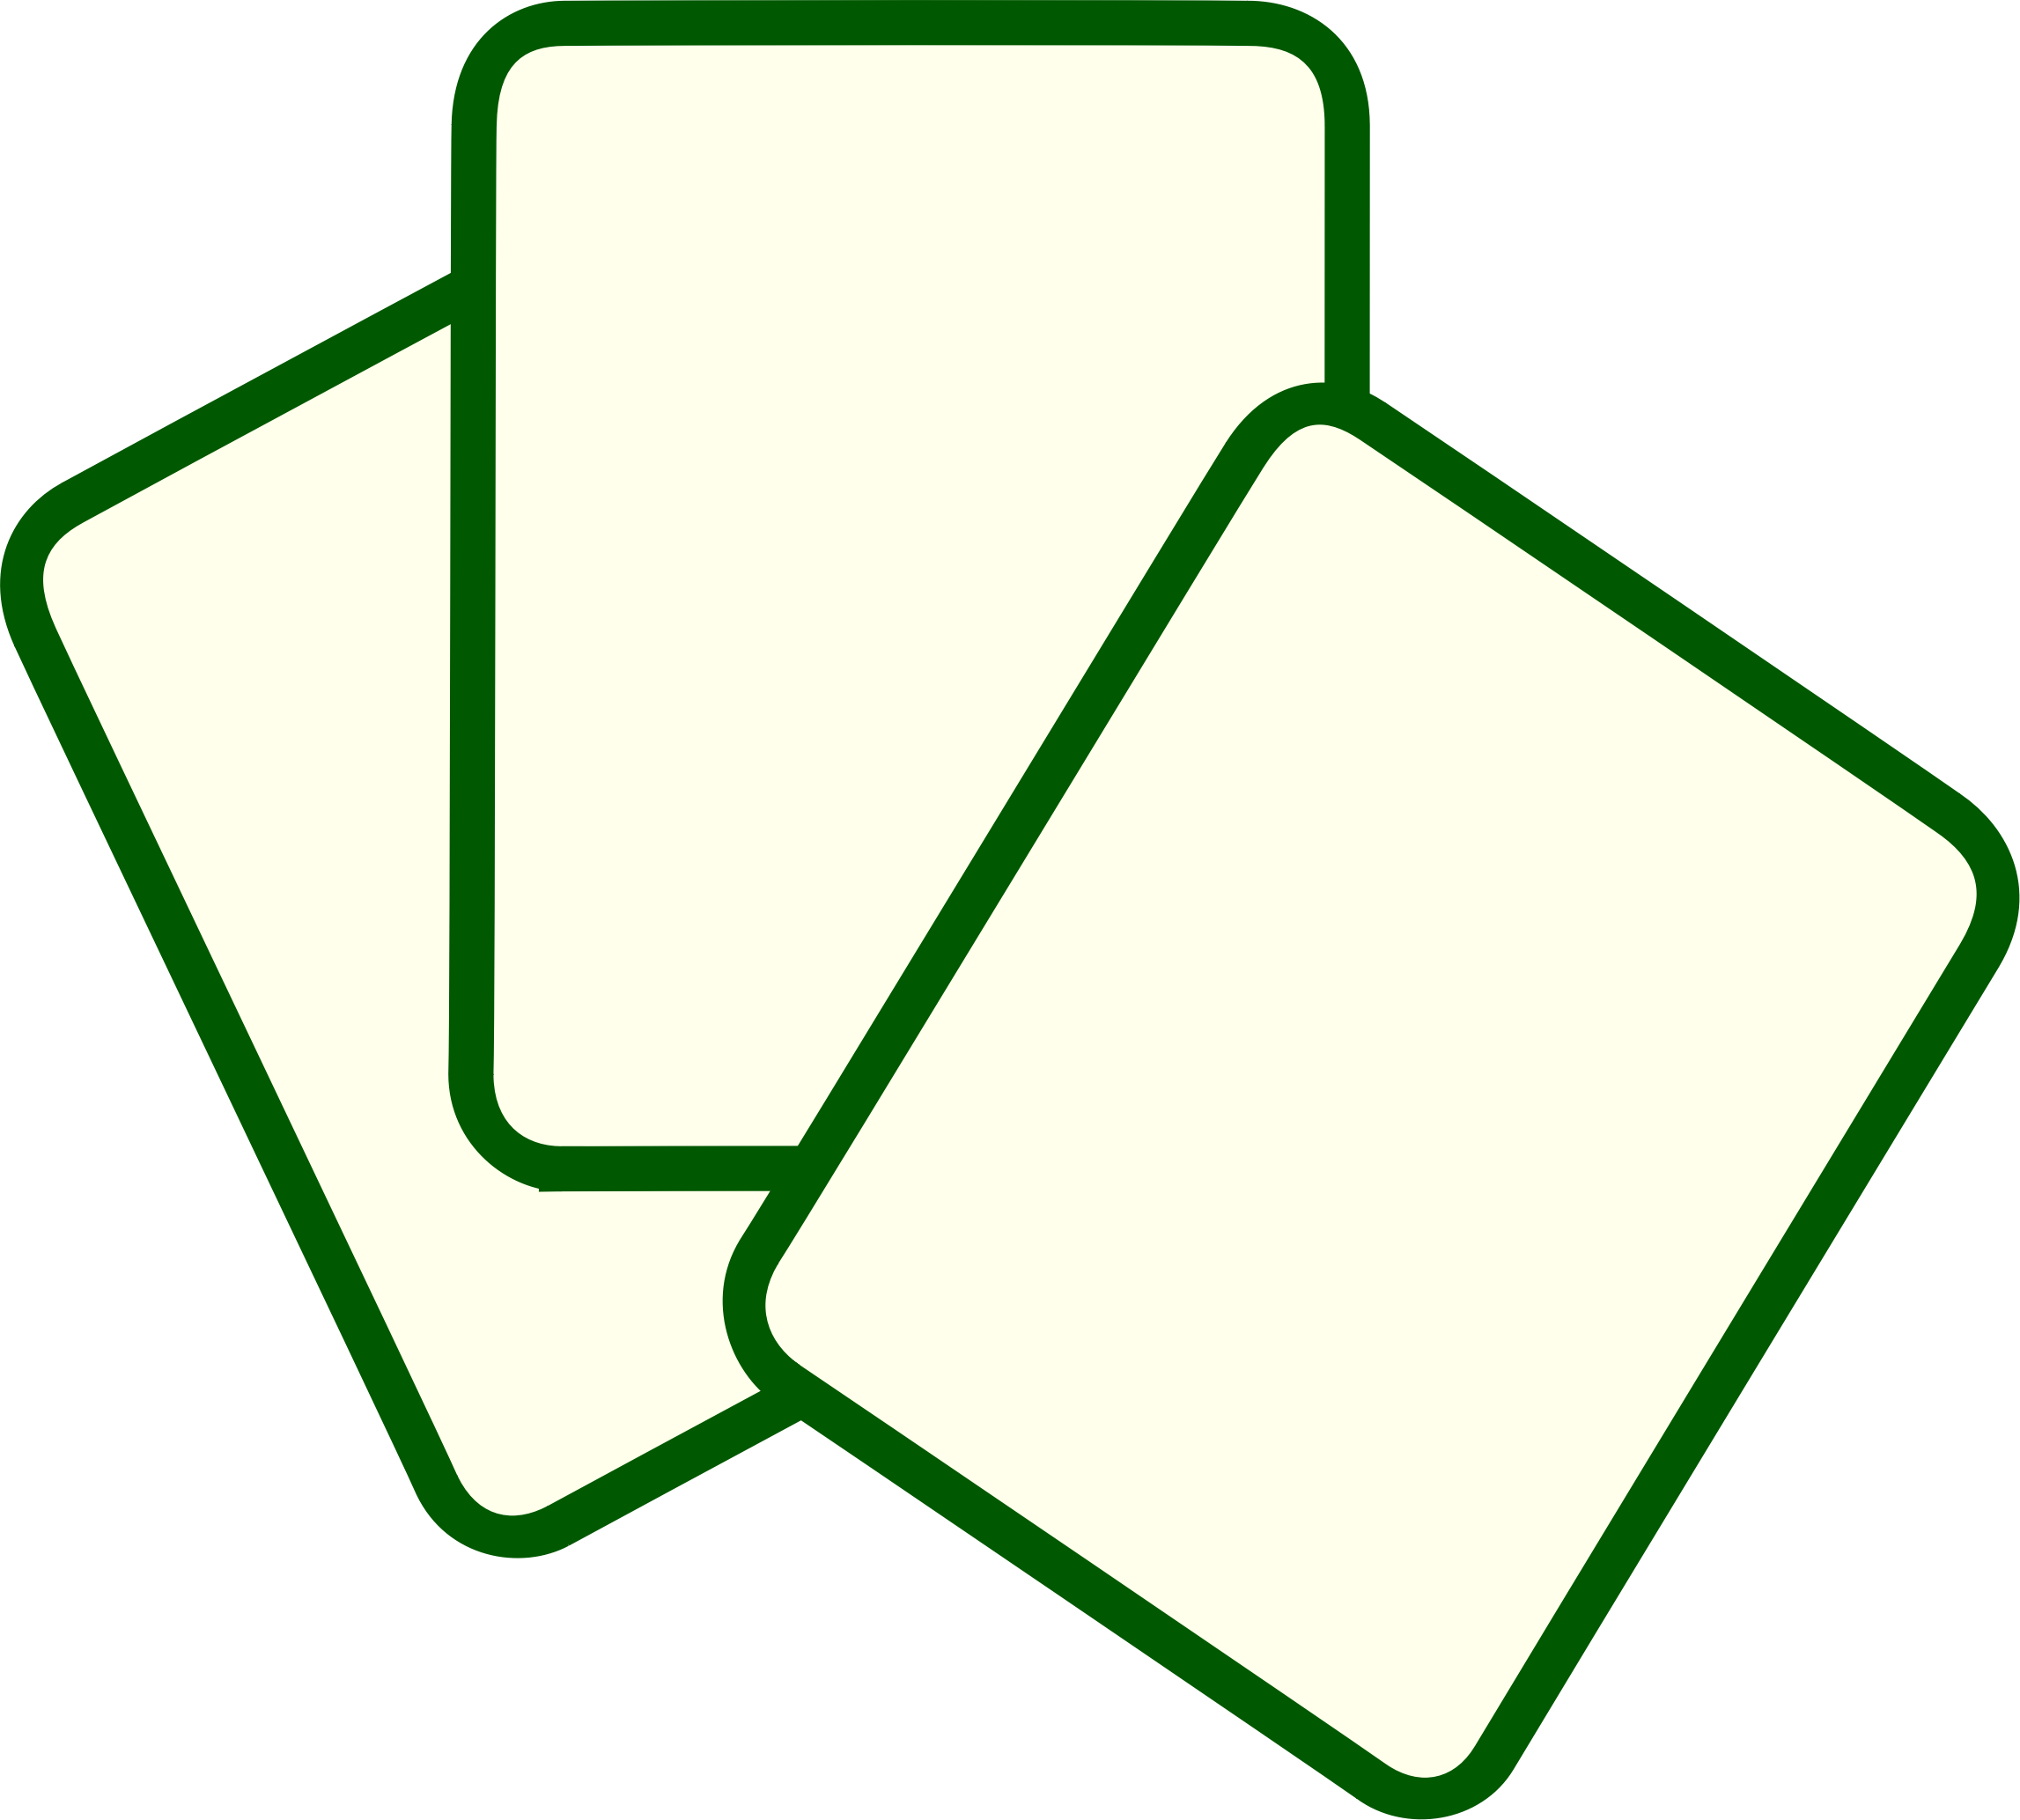 Cards clipart plain. Images gallery for free